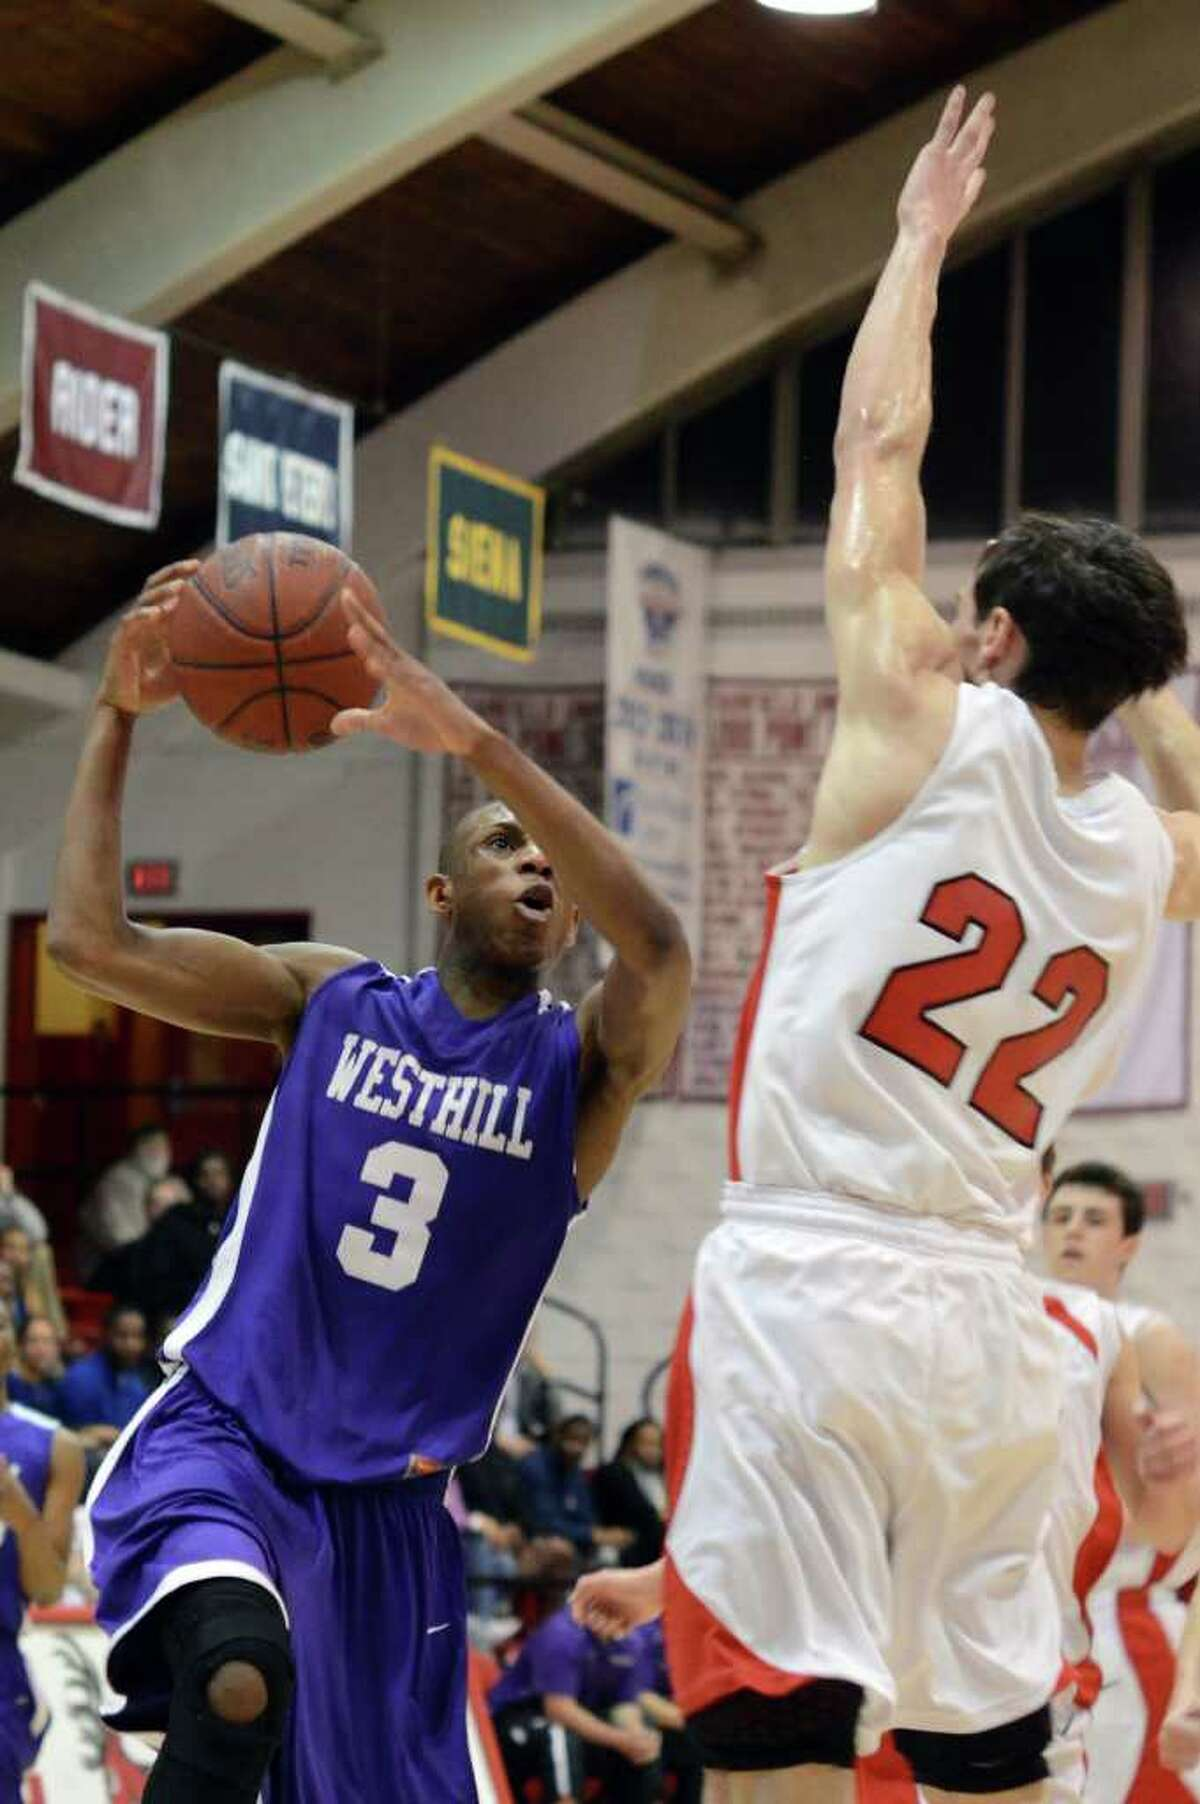 Westhill's Chris Walters (3) goes up for a shot as Fairfield Prep's Terry Tarpey (22) defends during the second round of the Class LL boys basketball state tournament at Fairfield University's Alumni Hall on Thursday, Mar. 8, 2012.